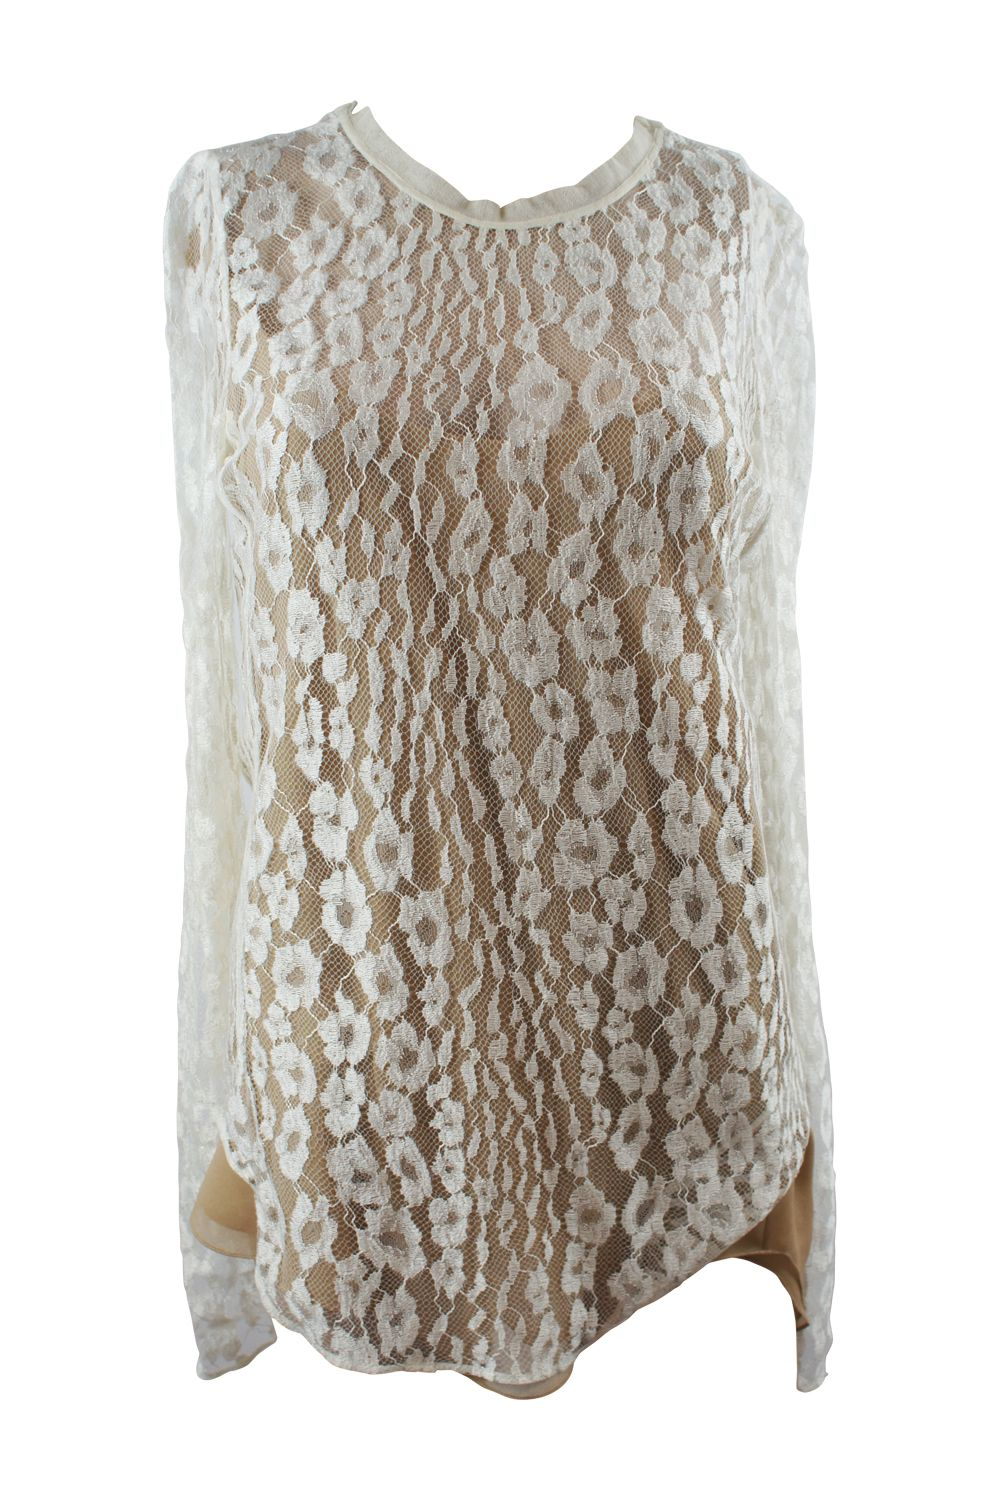 Chloé White Contrast Lined Long Sleeve Floral Lace Top 3 Preview Images